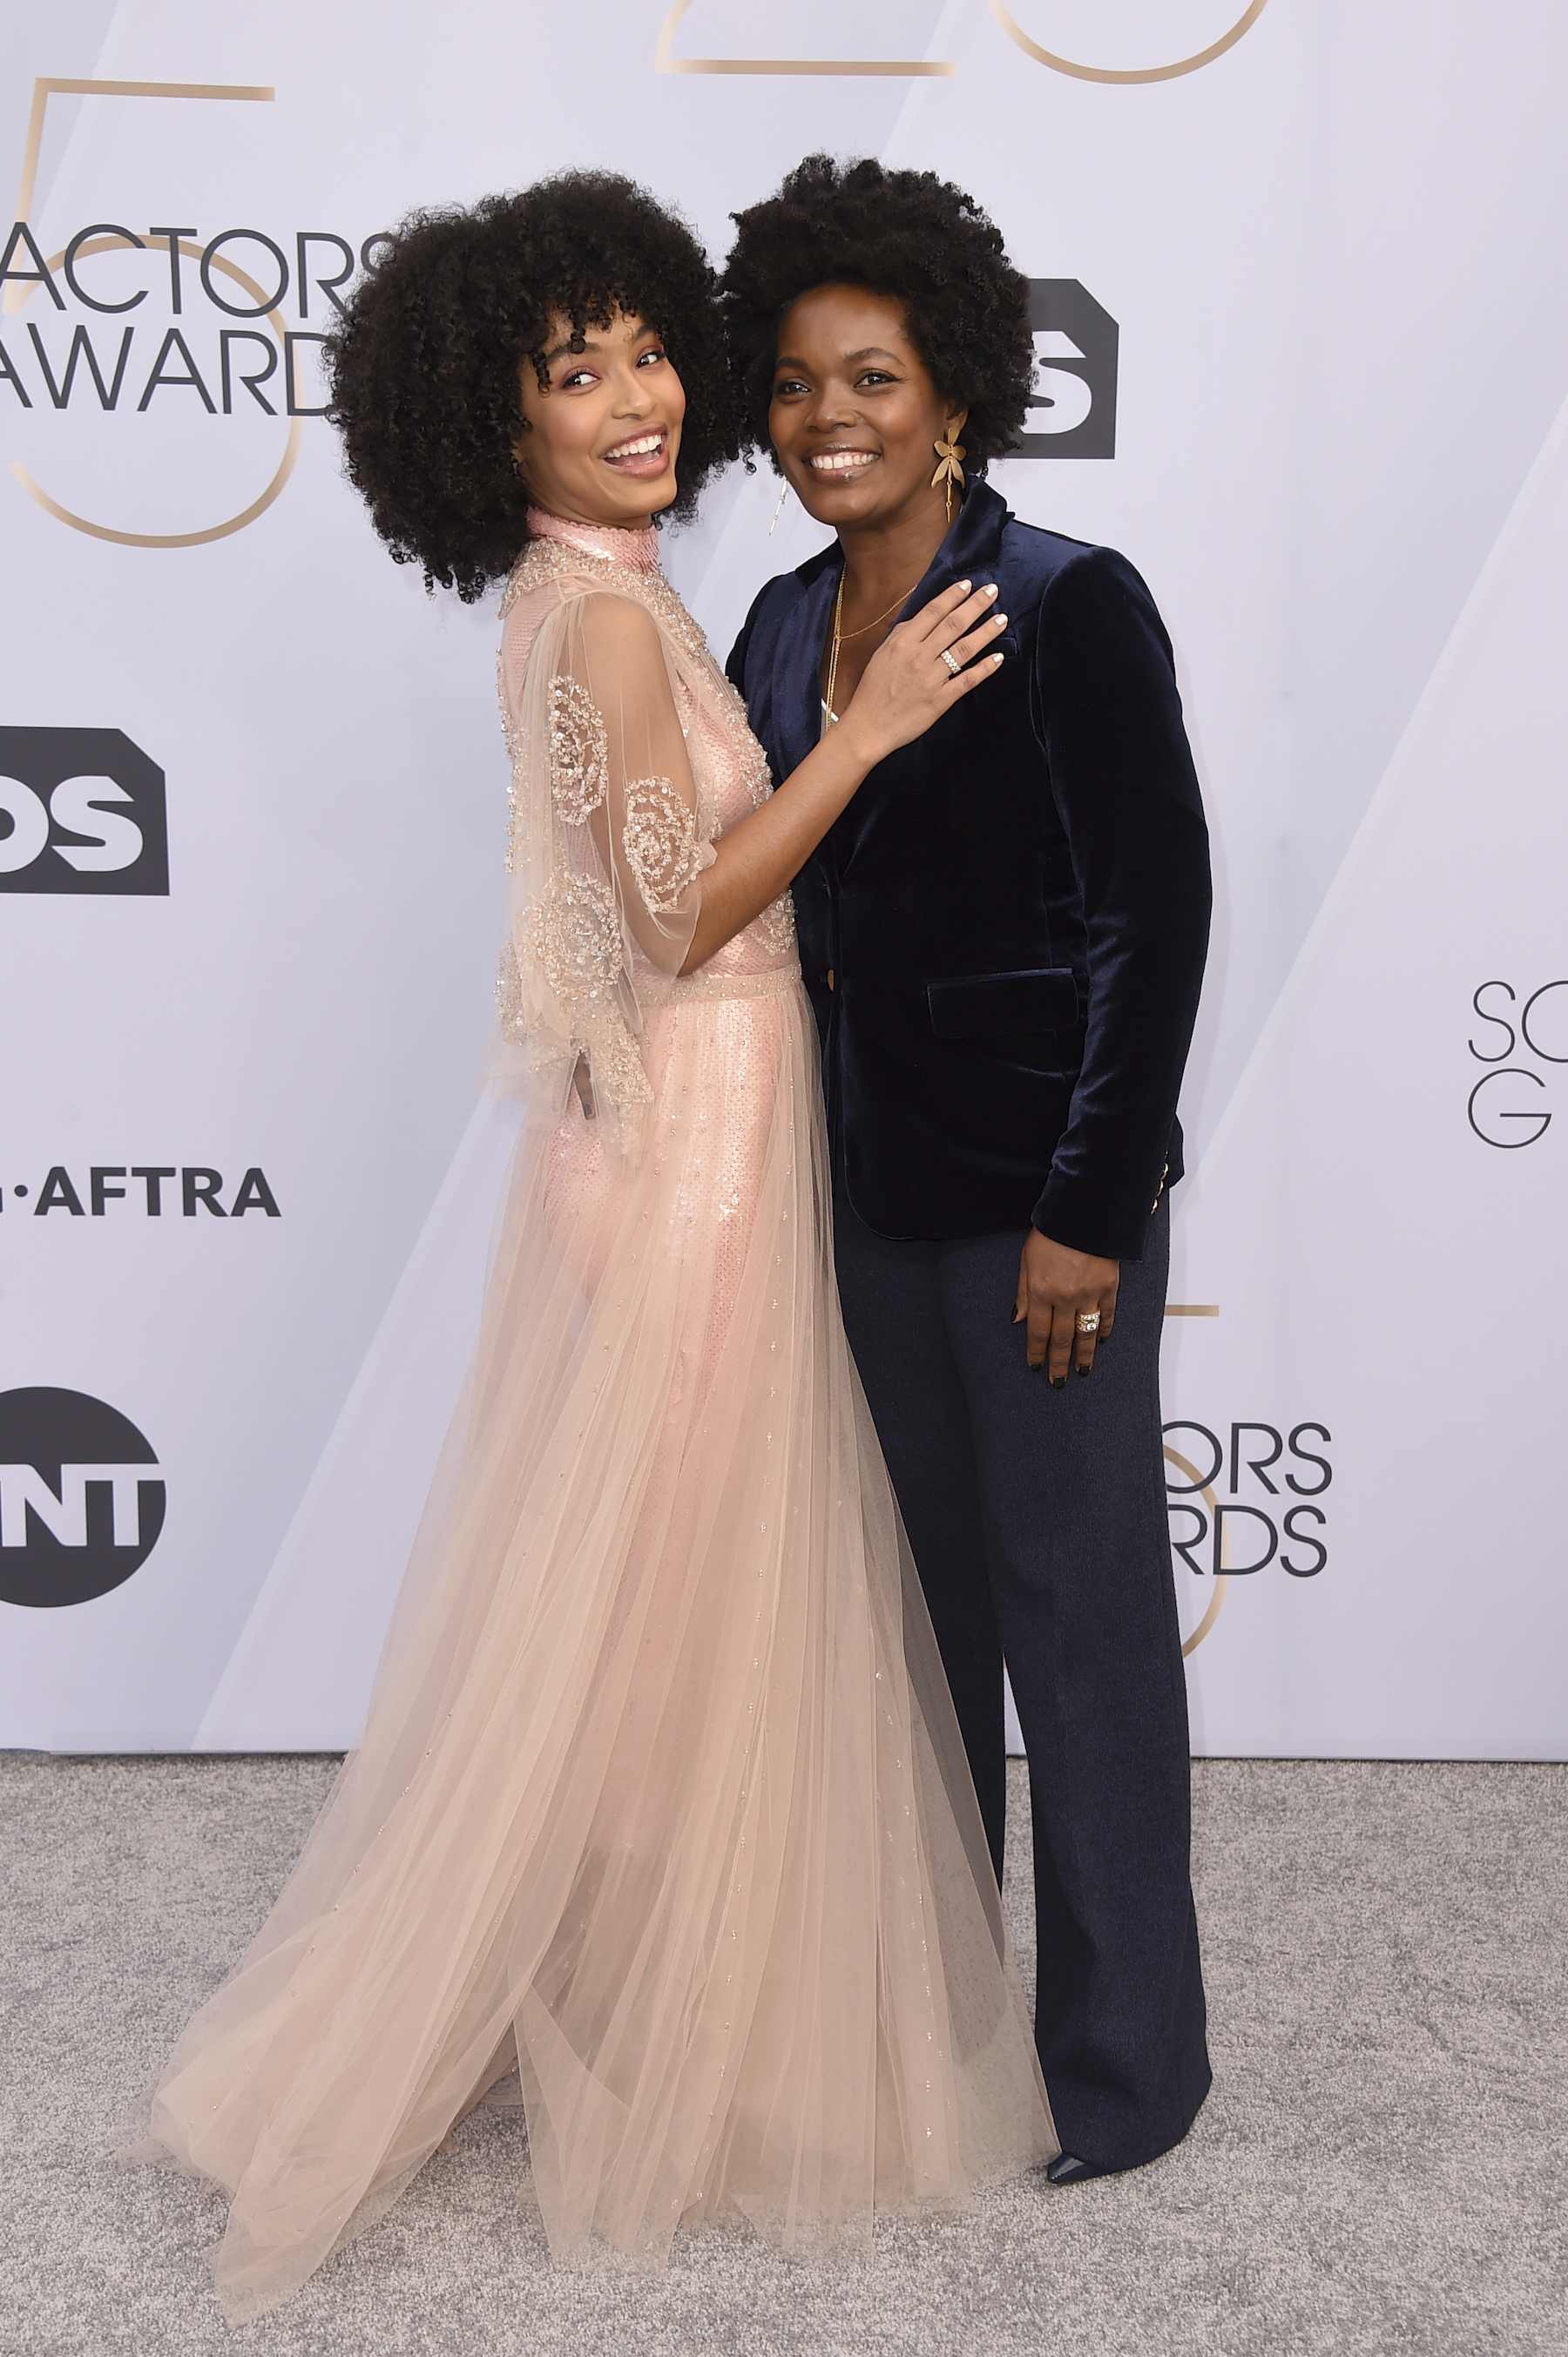 "<div class=""meta image-caption""><div class=""origin-logo origin-image ap""><span>AP</span></div><span class=""caption-text"">Yara Shahidi, left, and Keri Shahidi arrive at the 25th annual Screen Actors Guild Awards at the Shrine Auditorium & Expo Hall on Sunday, Jan. 27, 2019, in Los Angeles. (Jordan Strauss/Invision/AP)</span></div>"